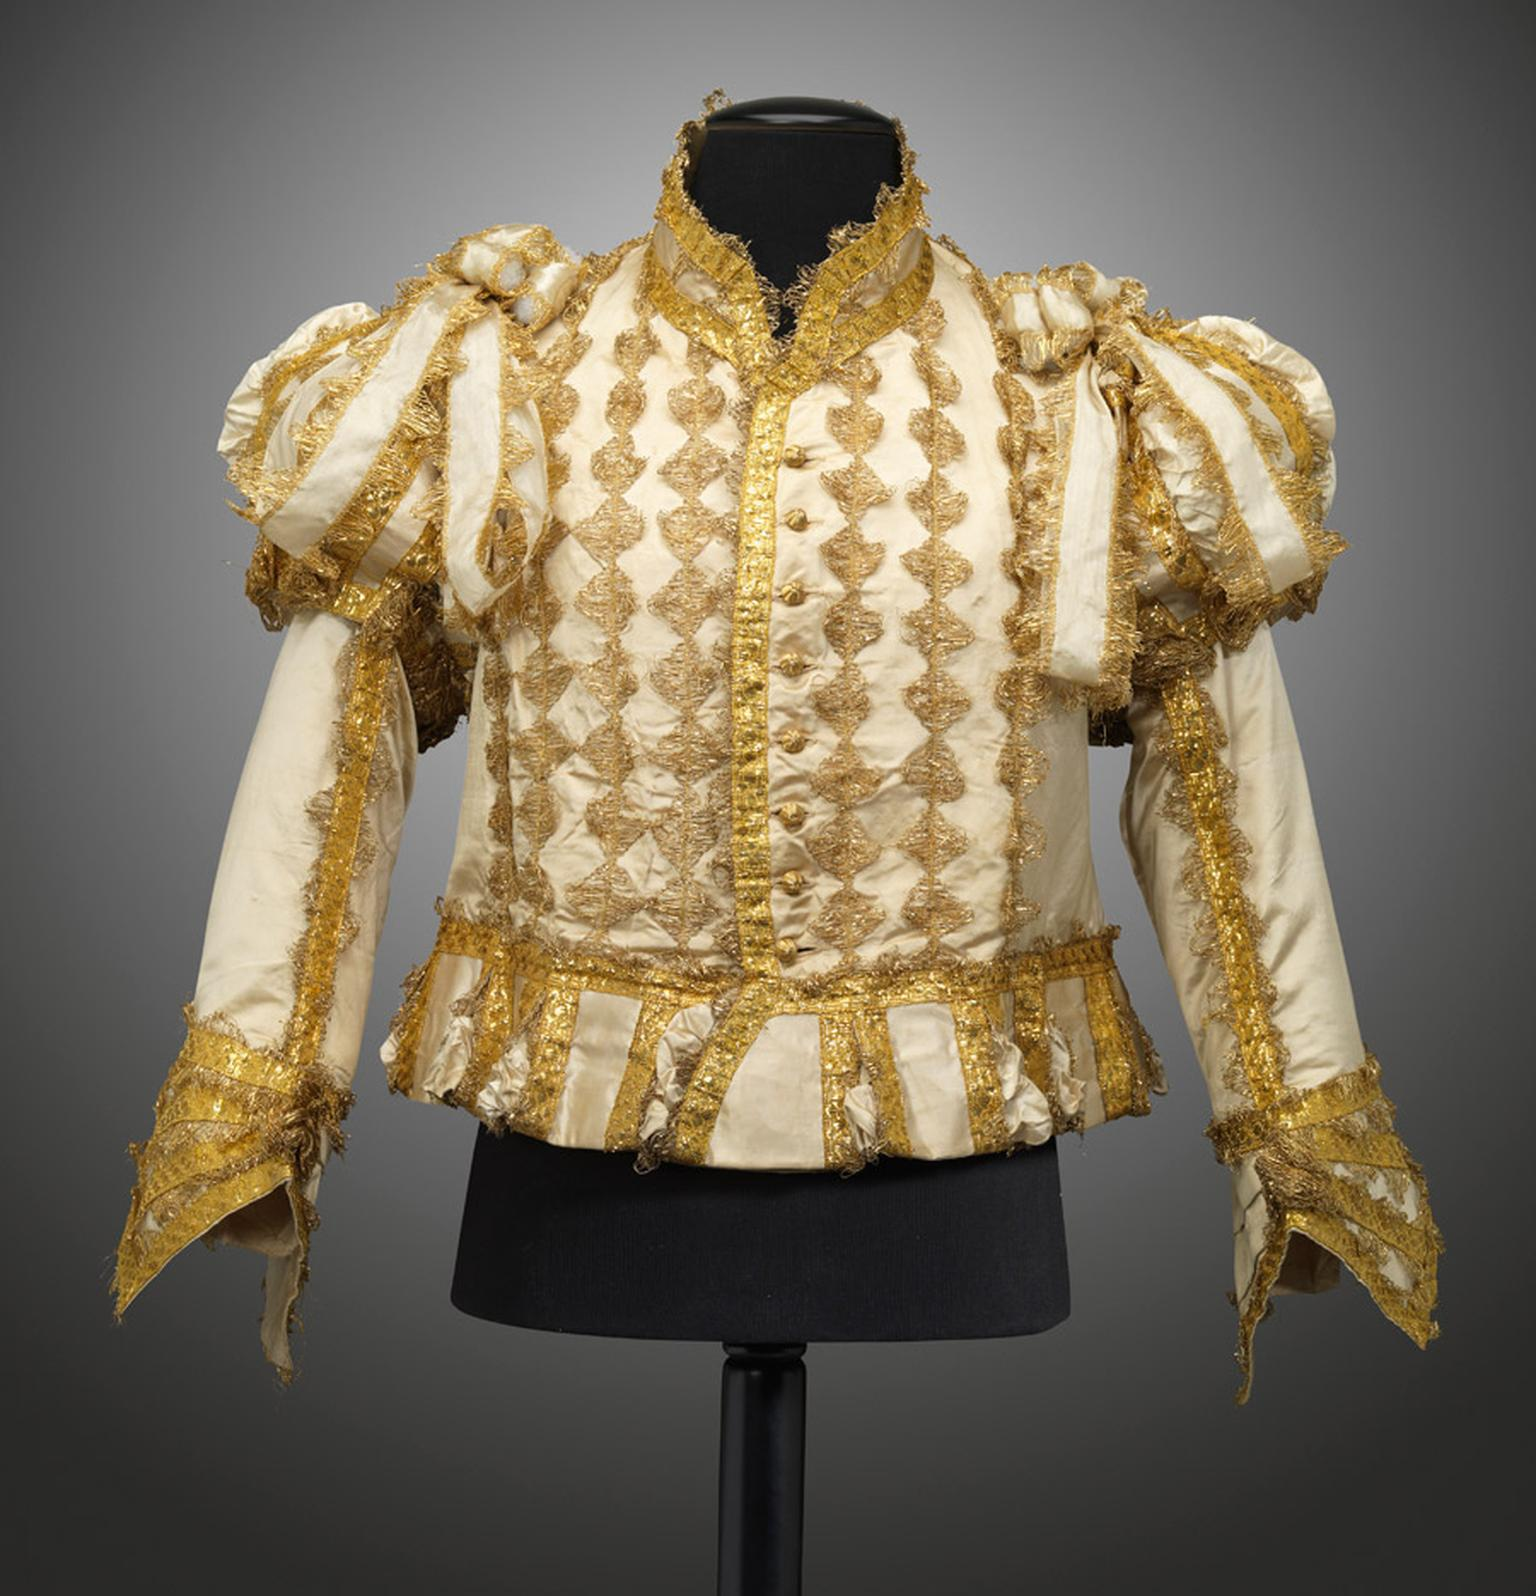 Goldsmiths-Silk-and-gold-jerkin-for-the-coronation-of-George-IV.jpg